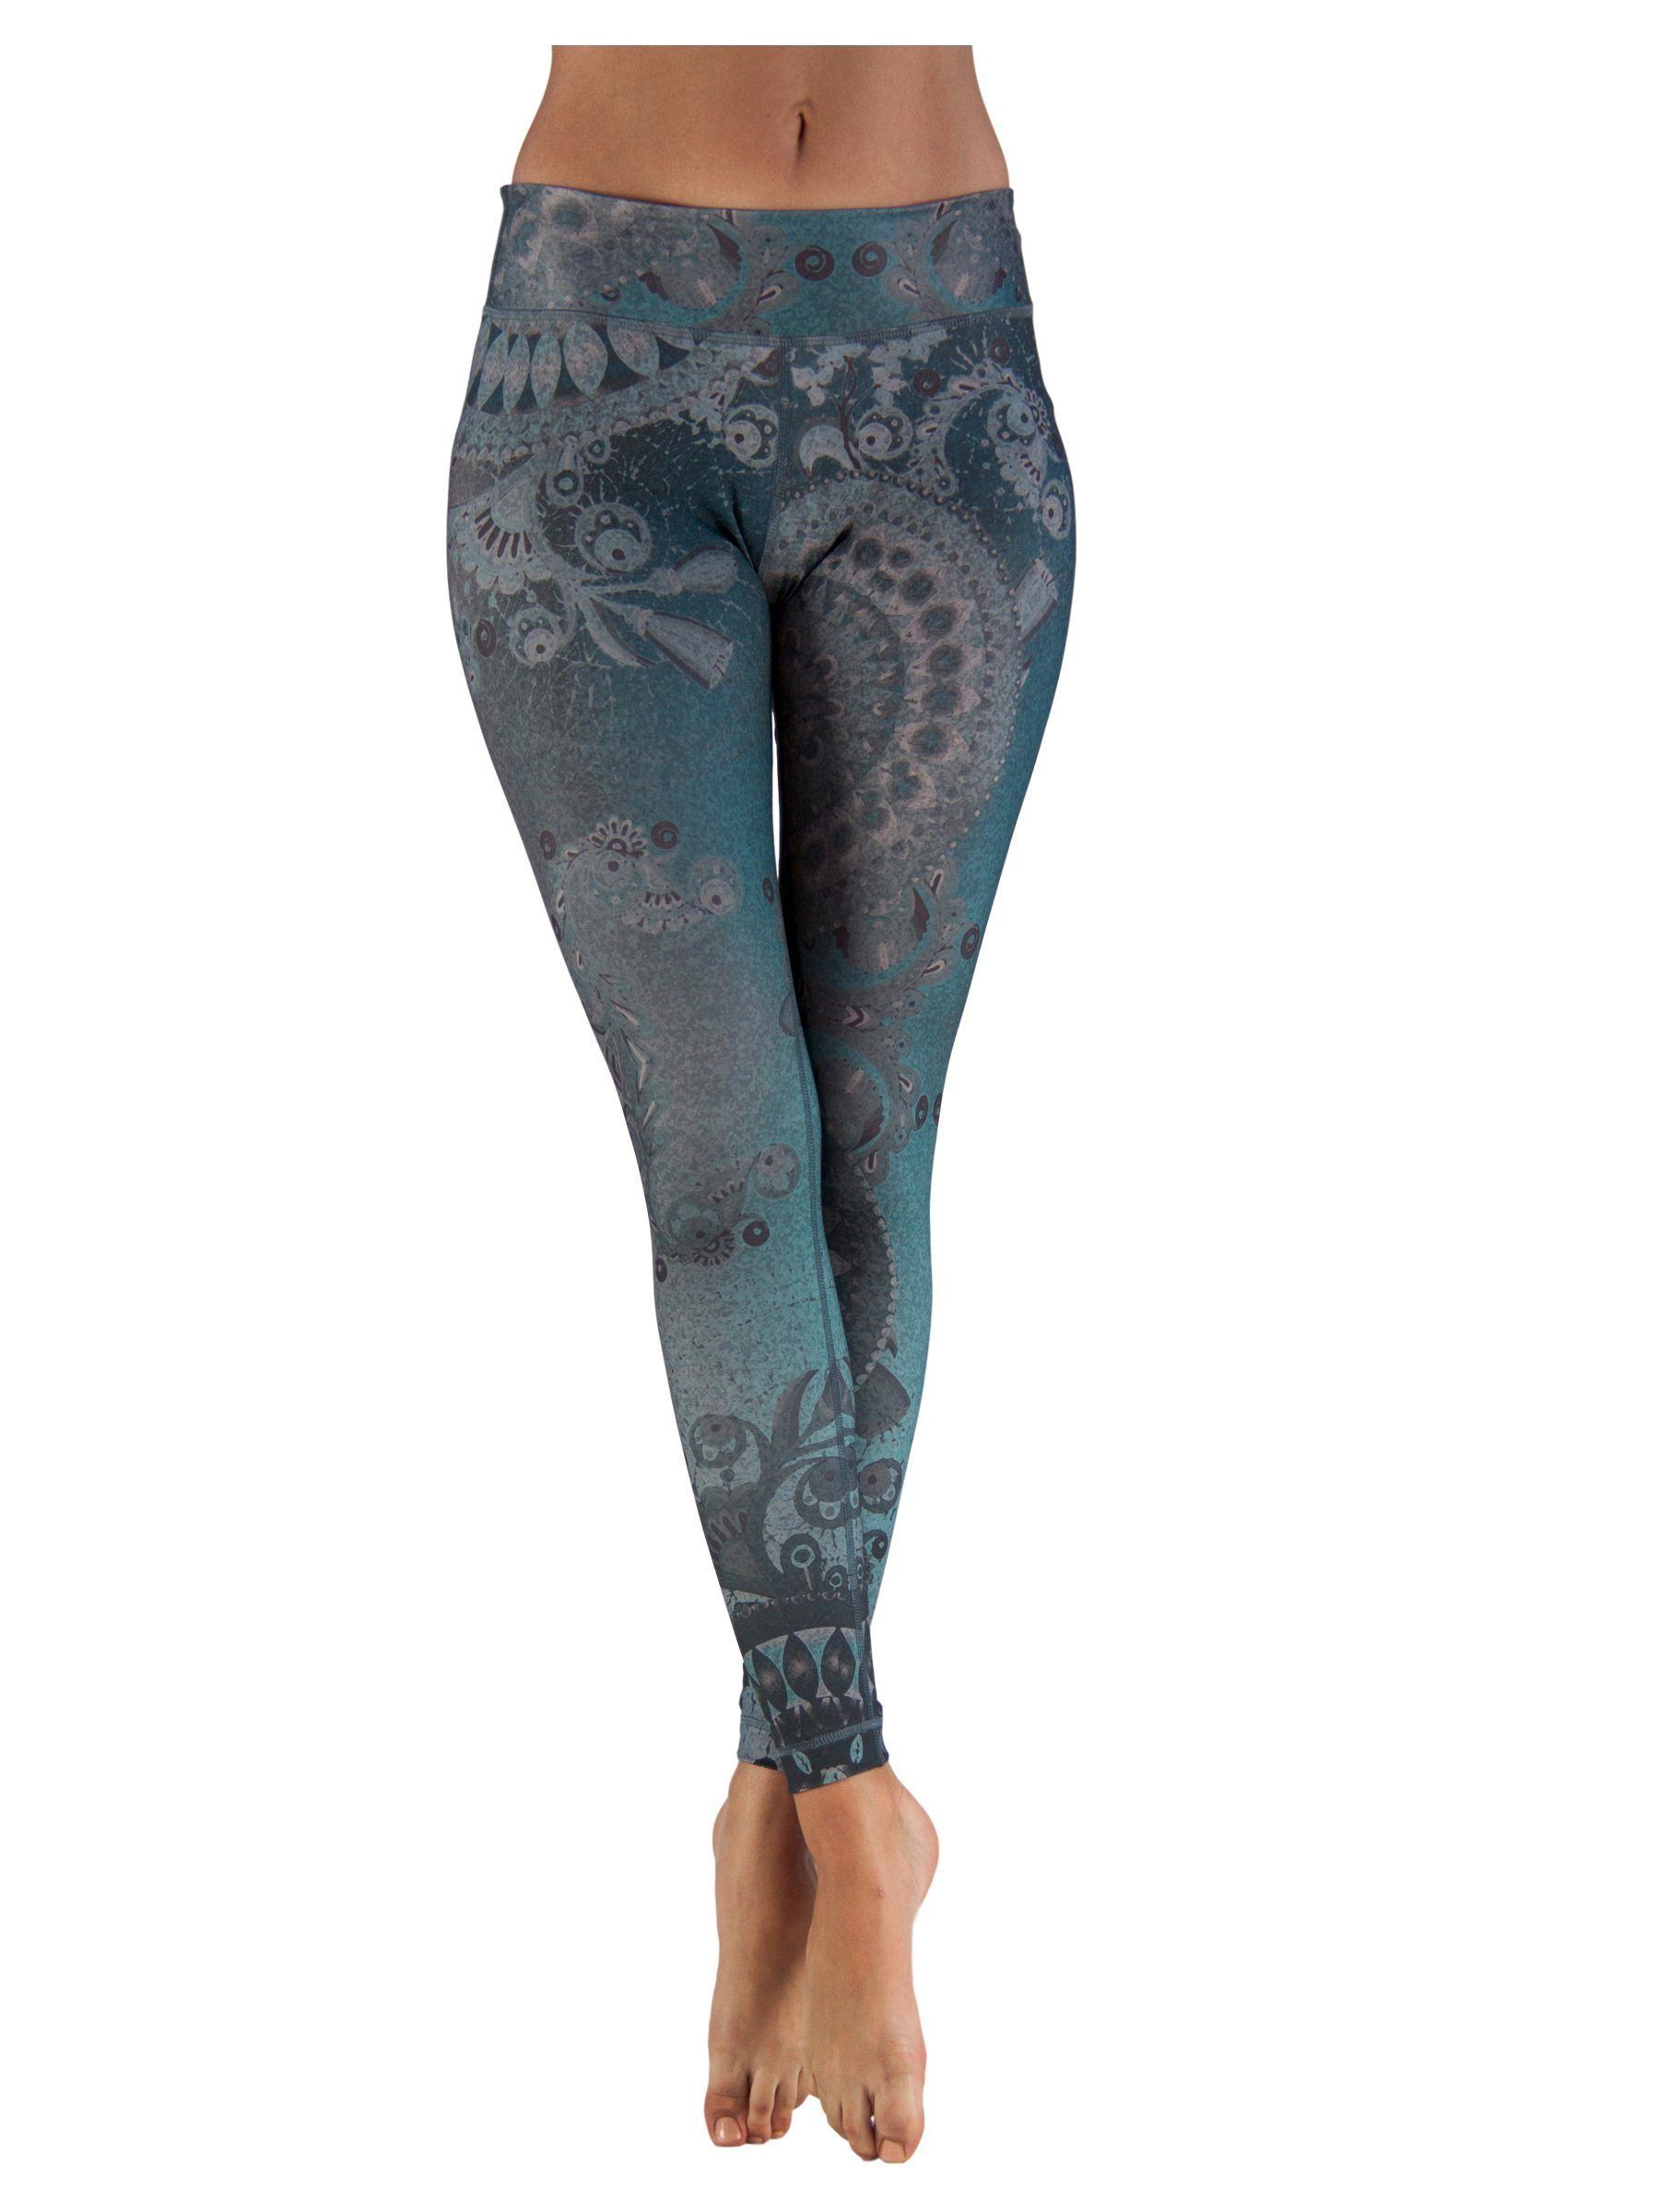 Gypsy Love by Niyama - High Quality, , Yoga Legging for Movement Artists.